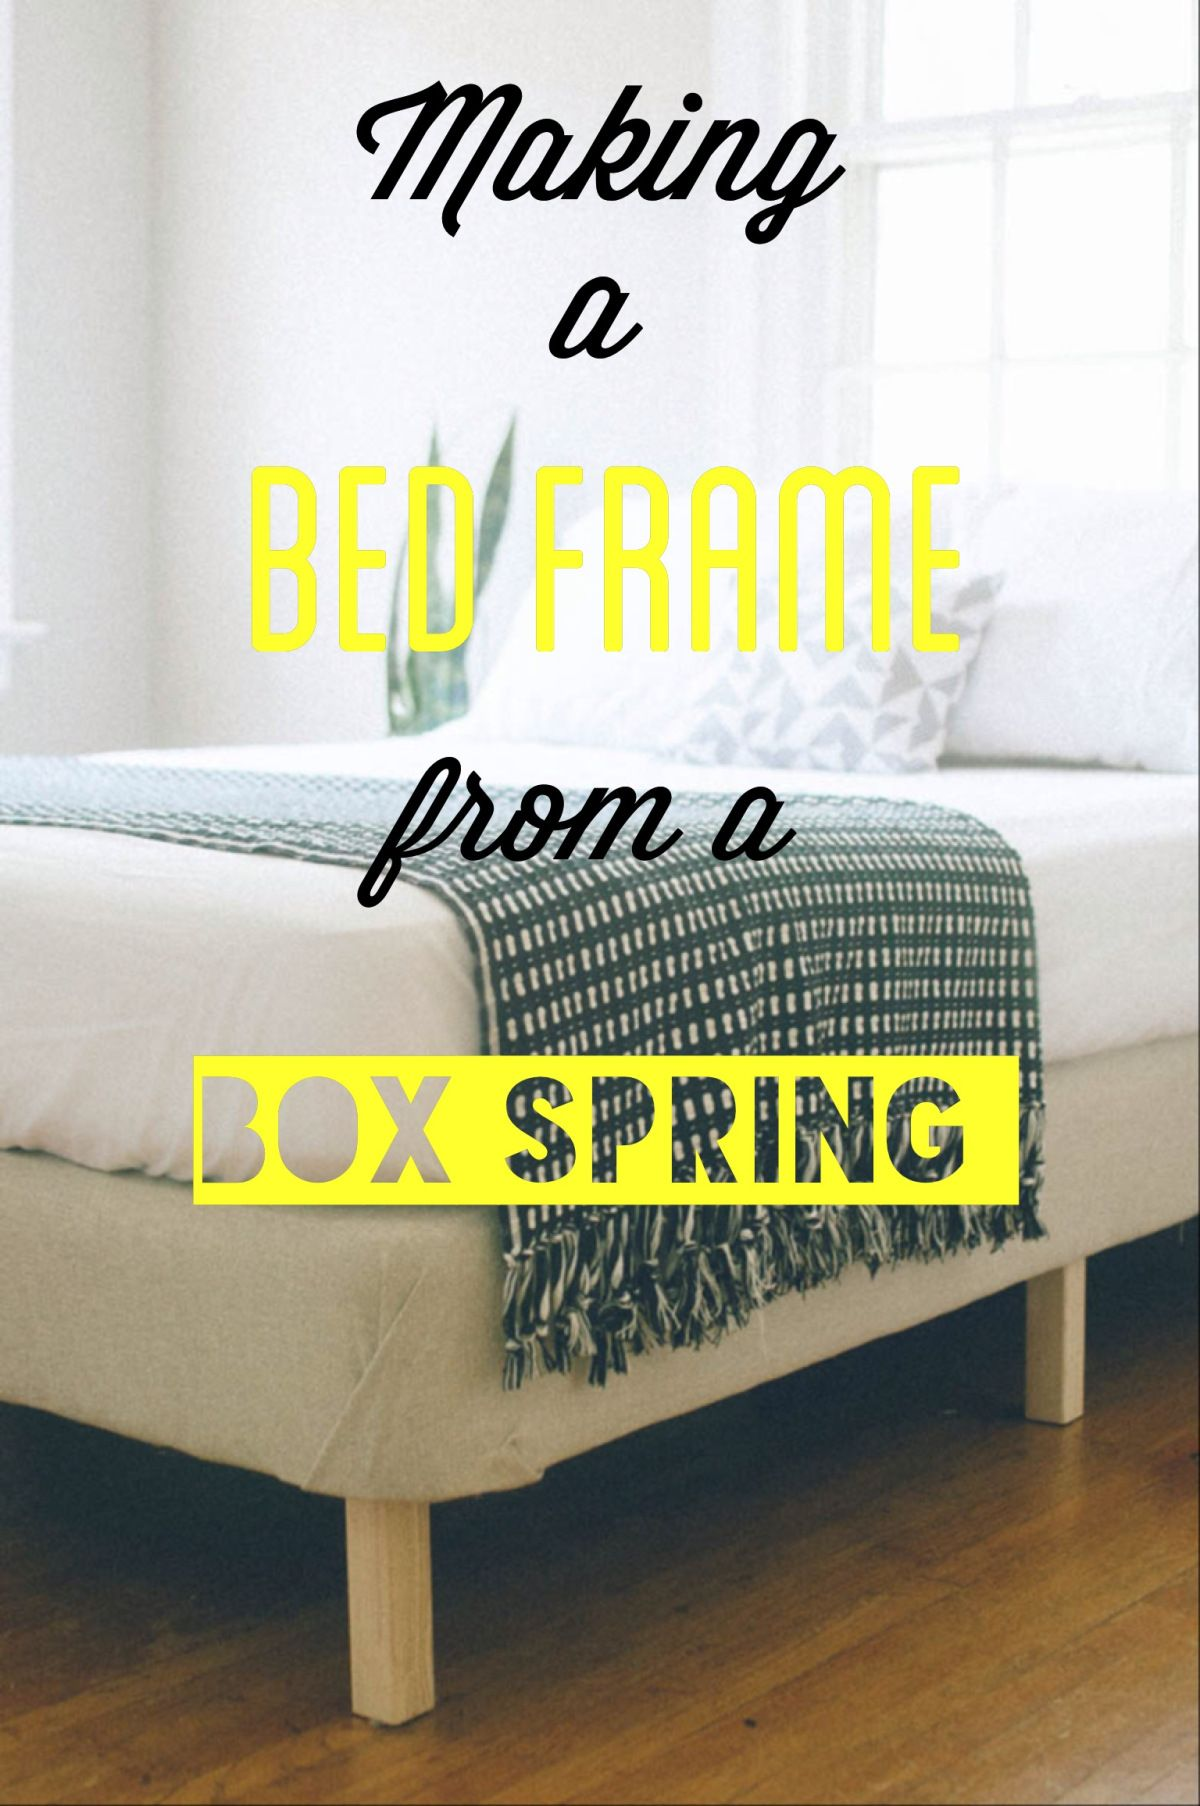 Boxspring Gestell Diy Bed Frame By Adding Simple Legs And Upholstery To Box Spring